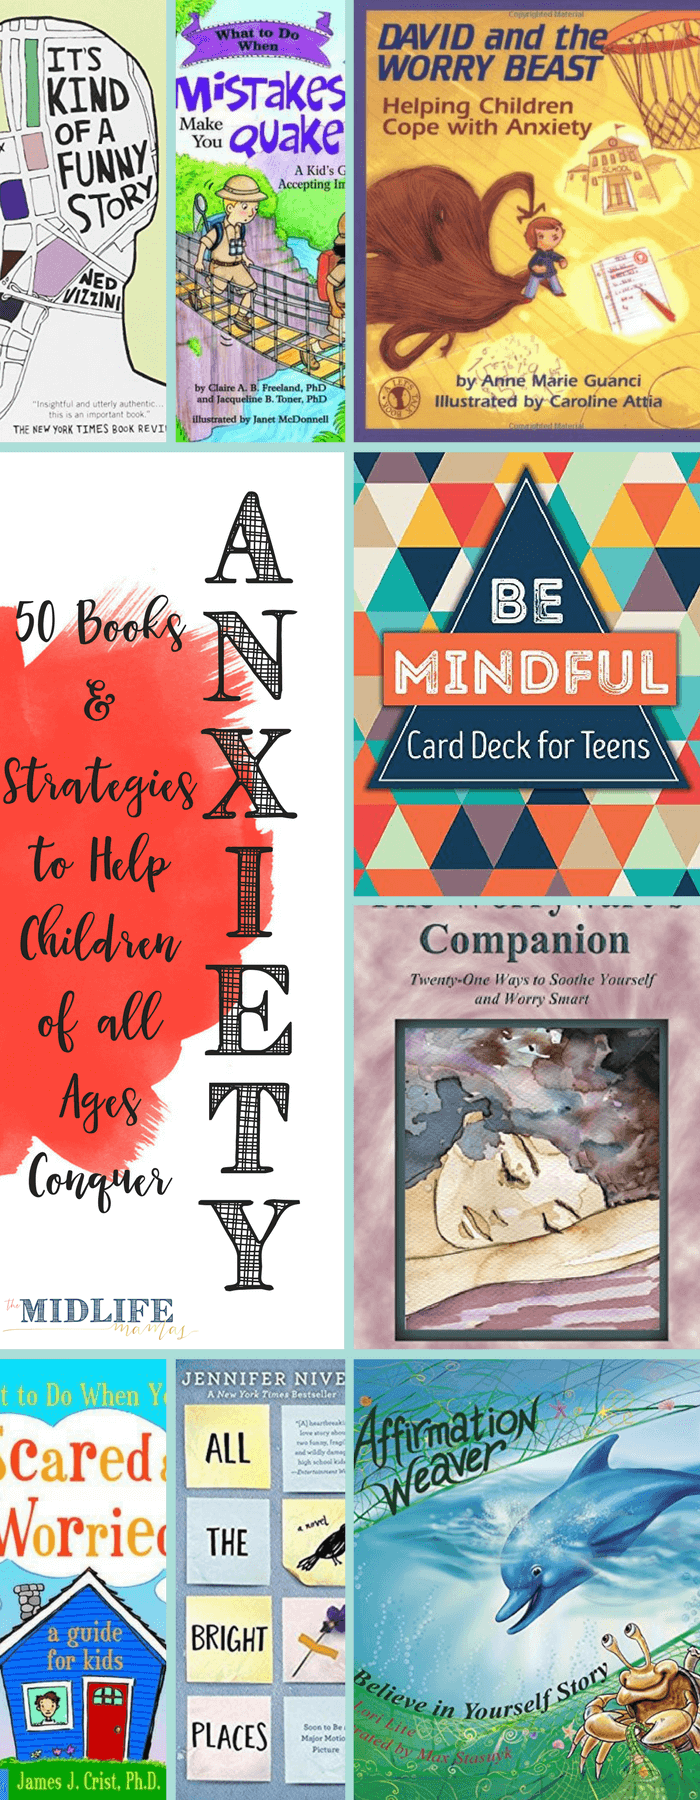 Stories for children about anxiety is the best list I've found with both stories and strategies for every kid of every age with any kind of worries! www.themidlifemamas.com